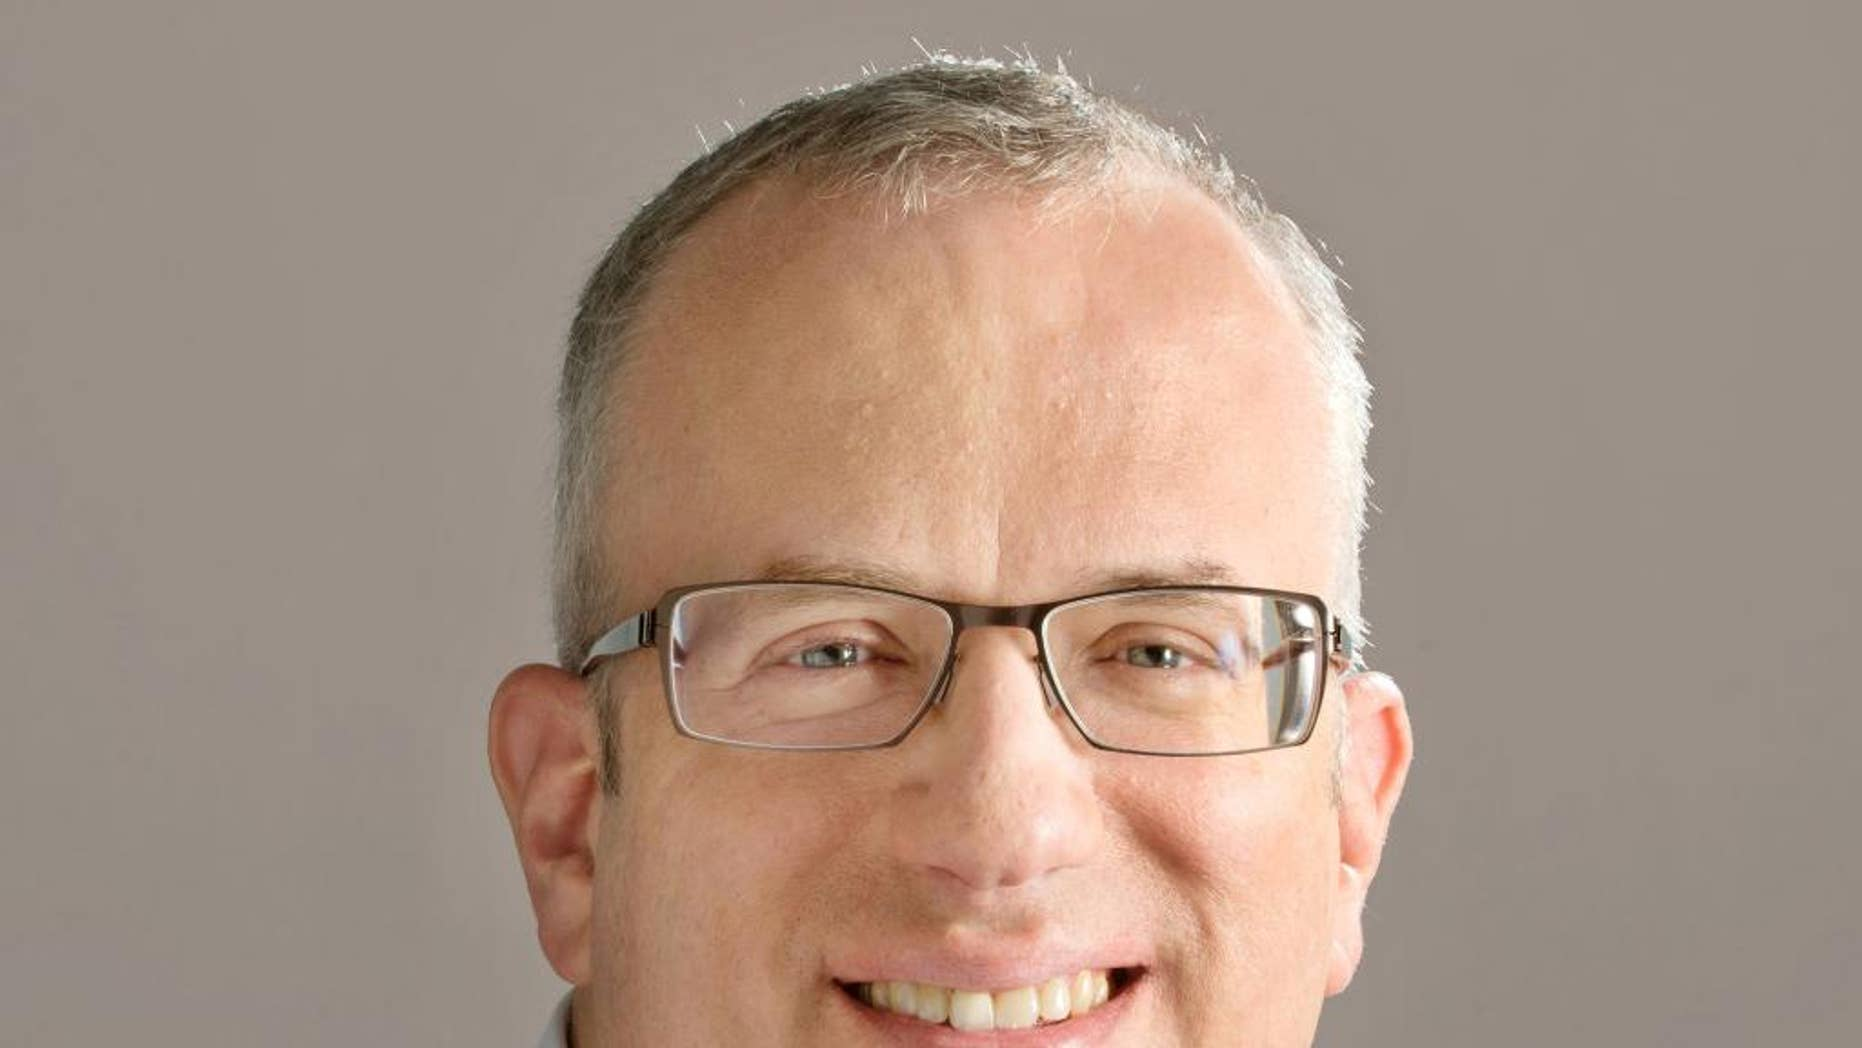 This undated photo provided by Mozilla shows co-founder and CEO Brendan Eich. Eich is stepping down as CEO and leaving the company following protests over his support of a gay marriage ban in California. At issue was Eich's $1,000 donation in 2008 to the campaign to pass California's Proposition 8, a constitutional amendment that outlawed same-sex marriages. (AP Photo/Mozilla)